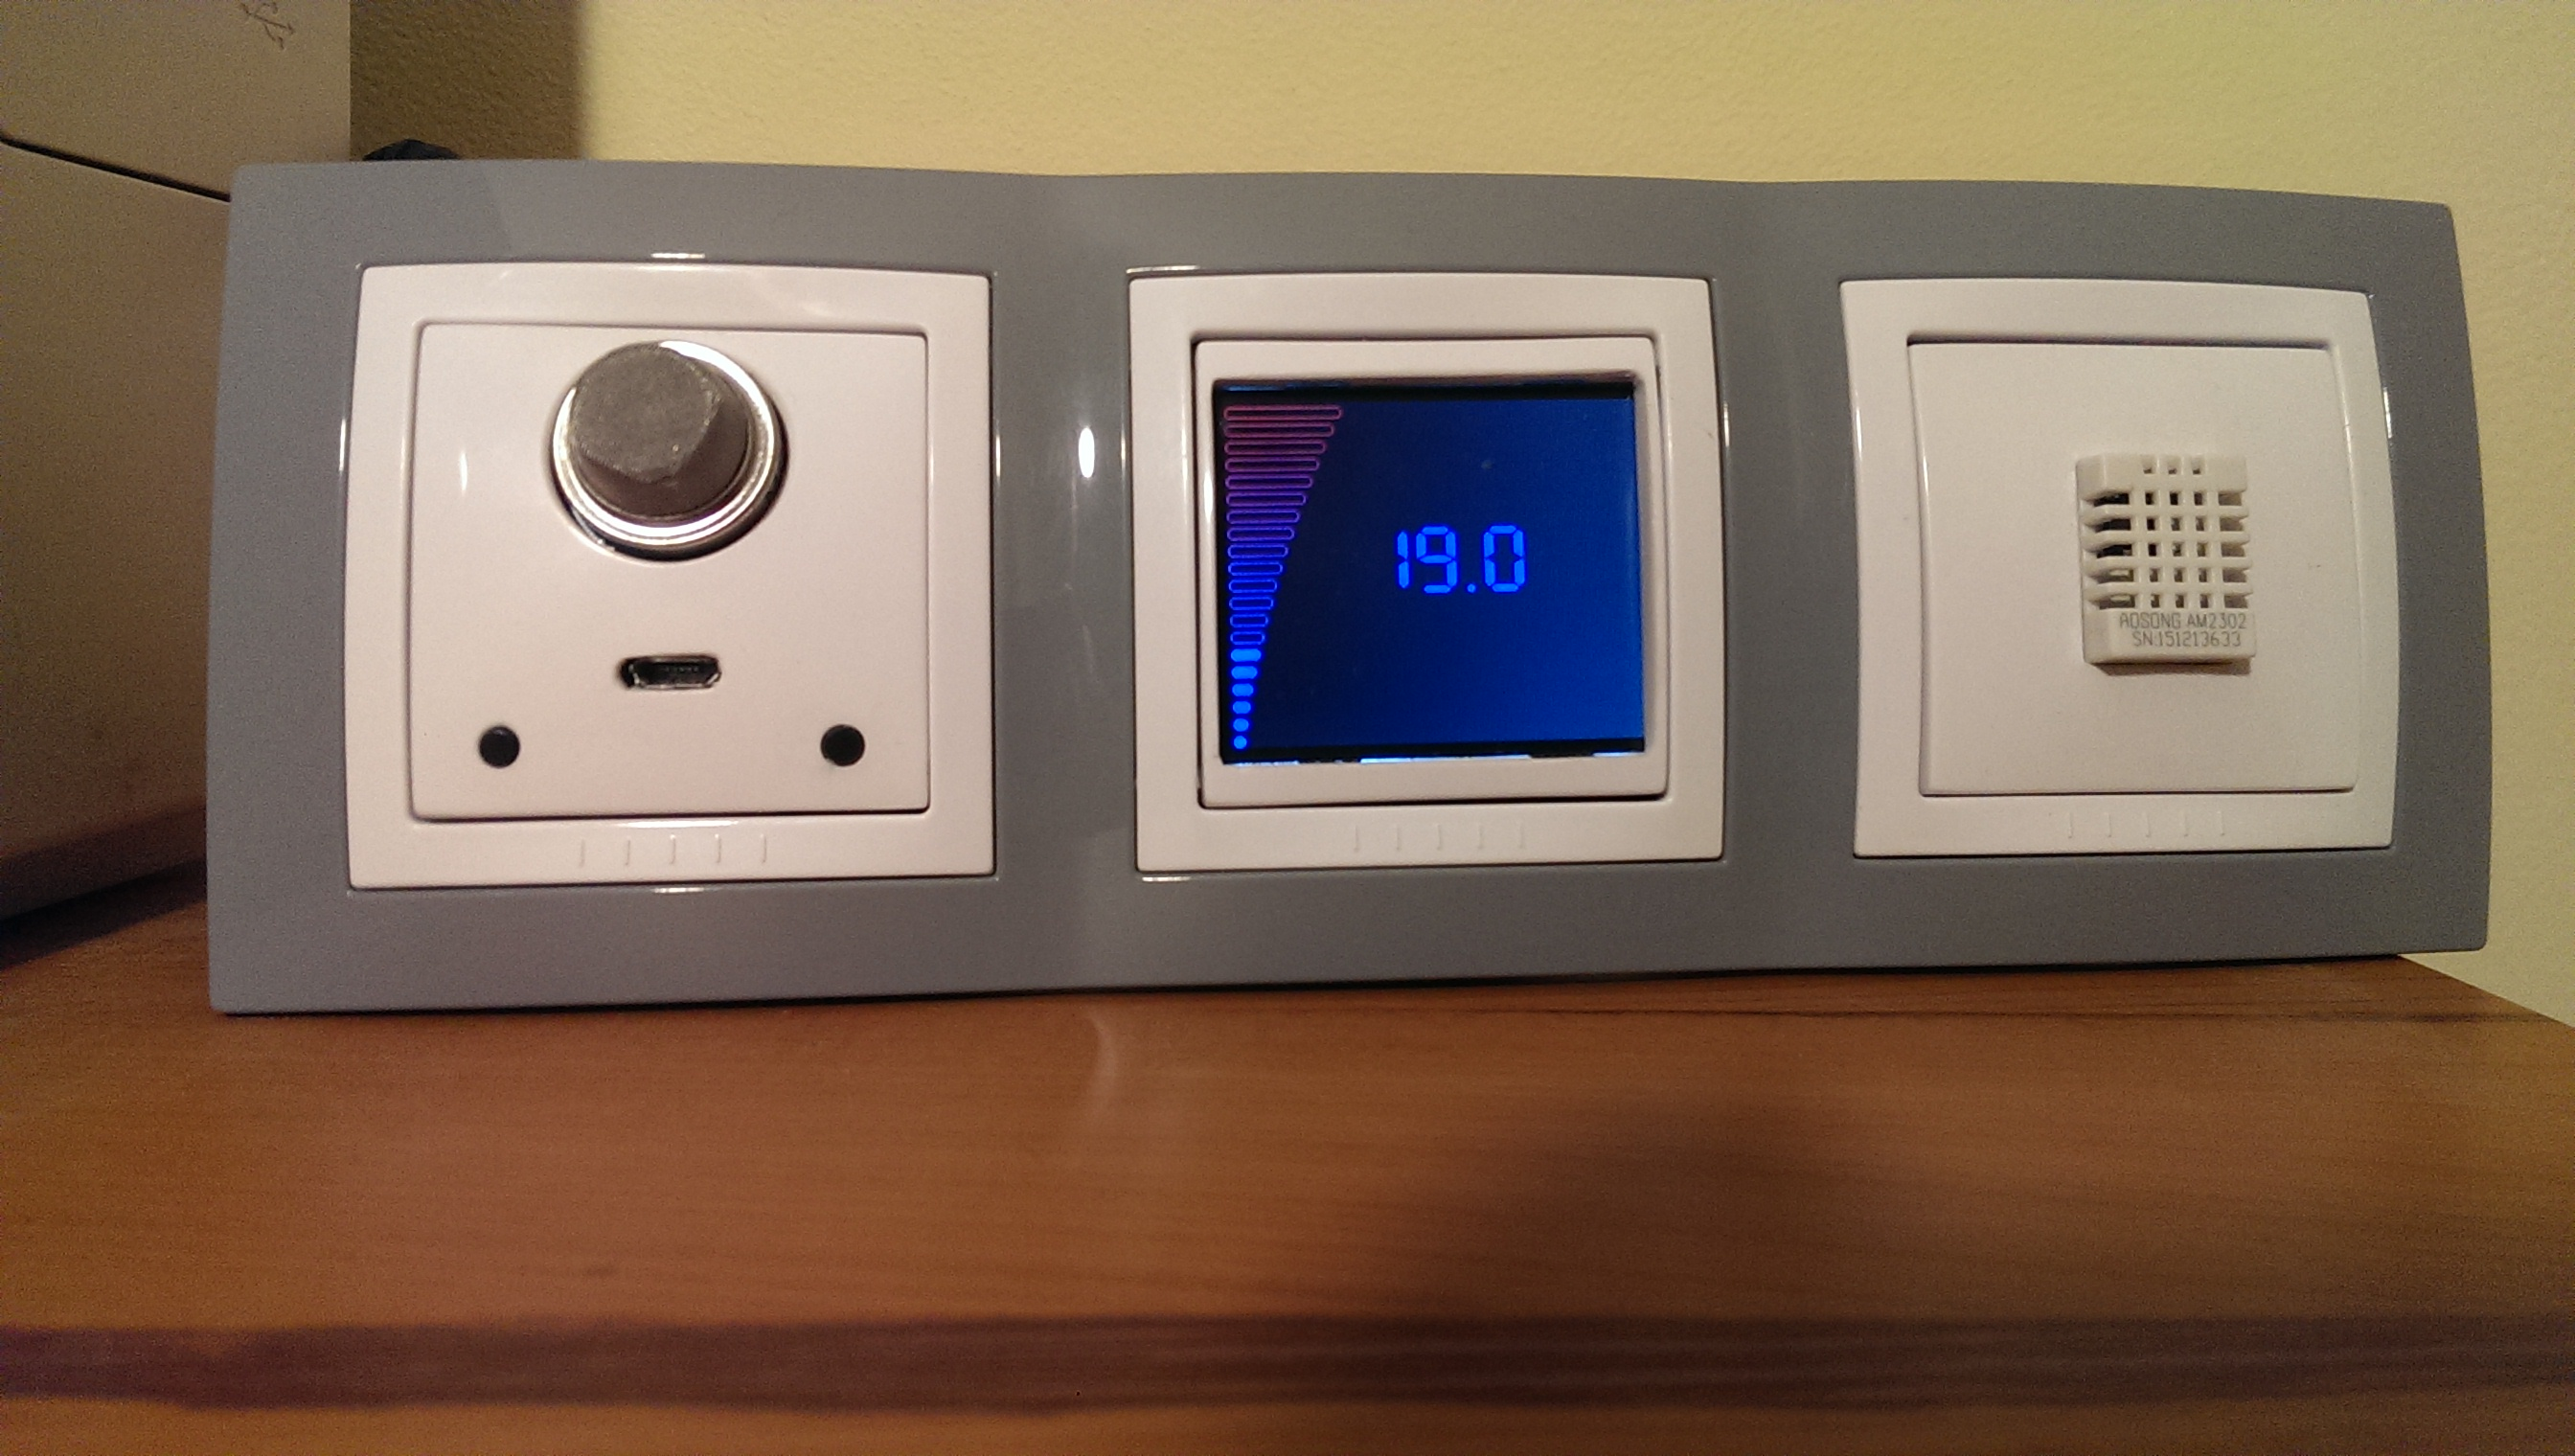 Esp8266 bedroom climate control hobby projects for Bedroom temperature